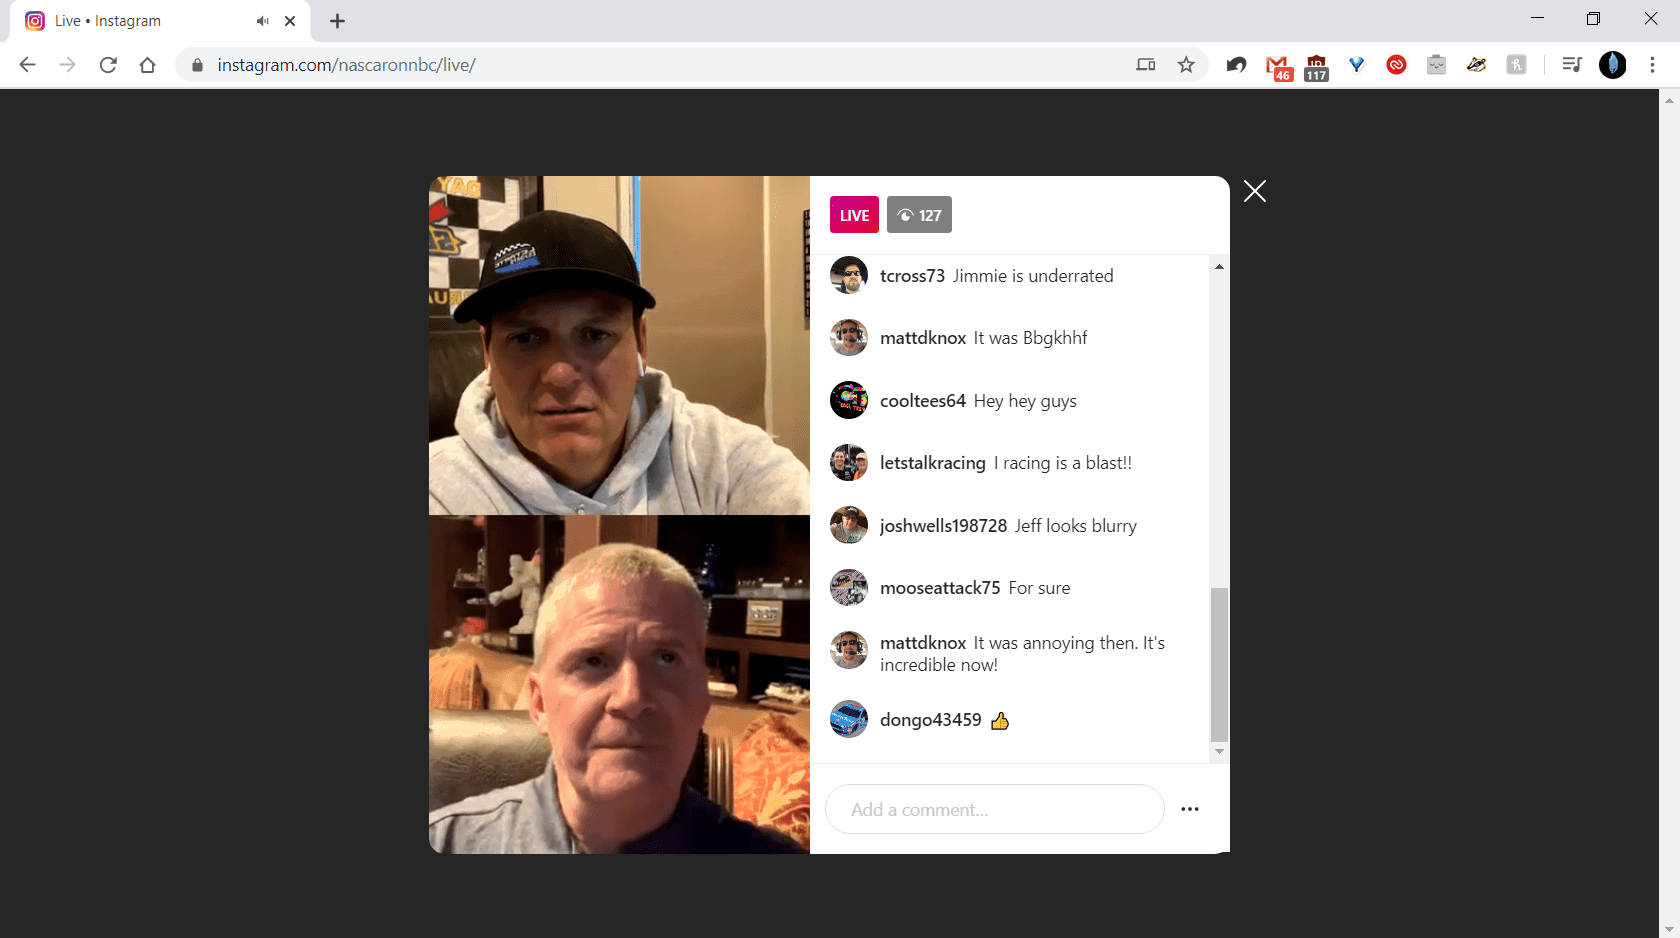 New Web version of Live Streaming